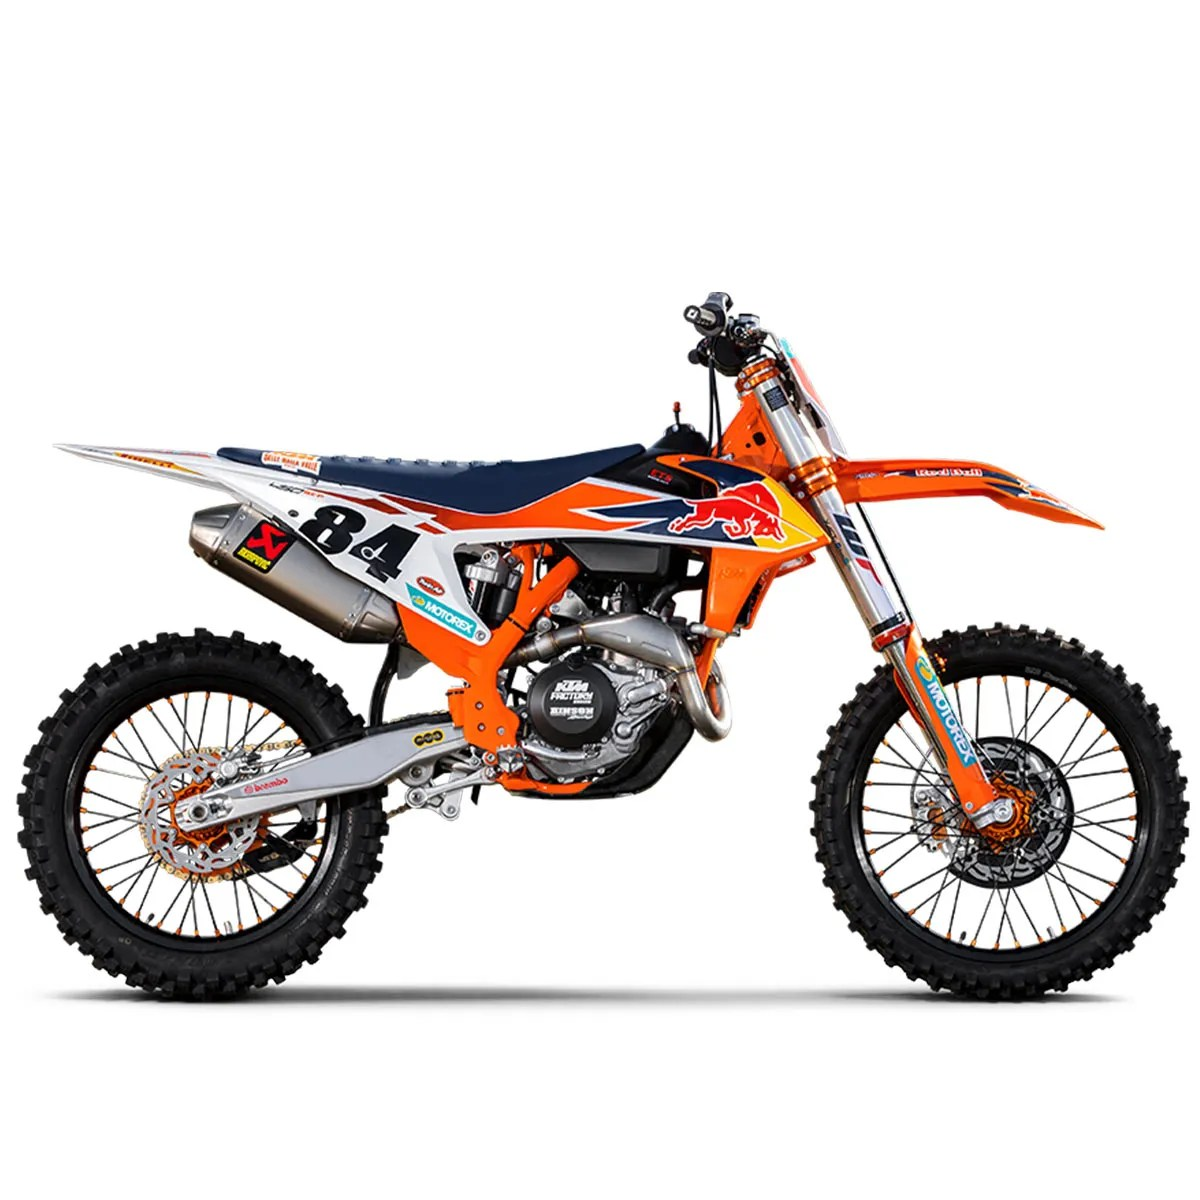 450-SX-F-Herlings-Replica